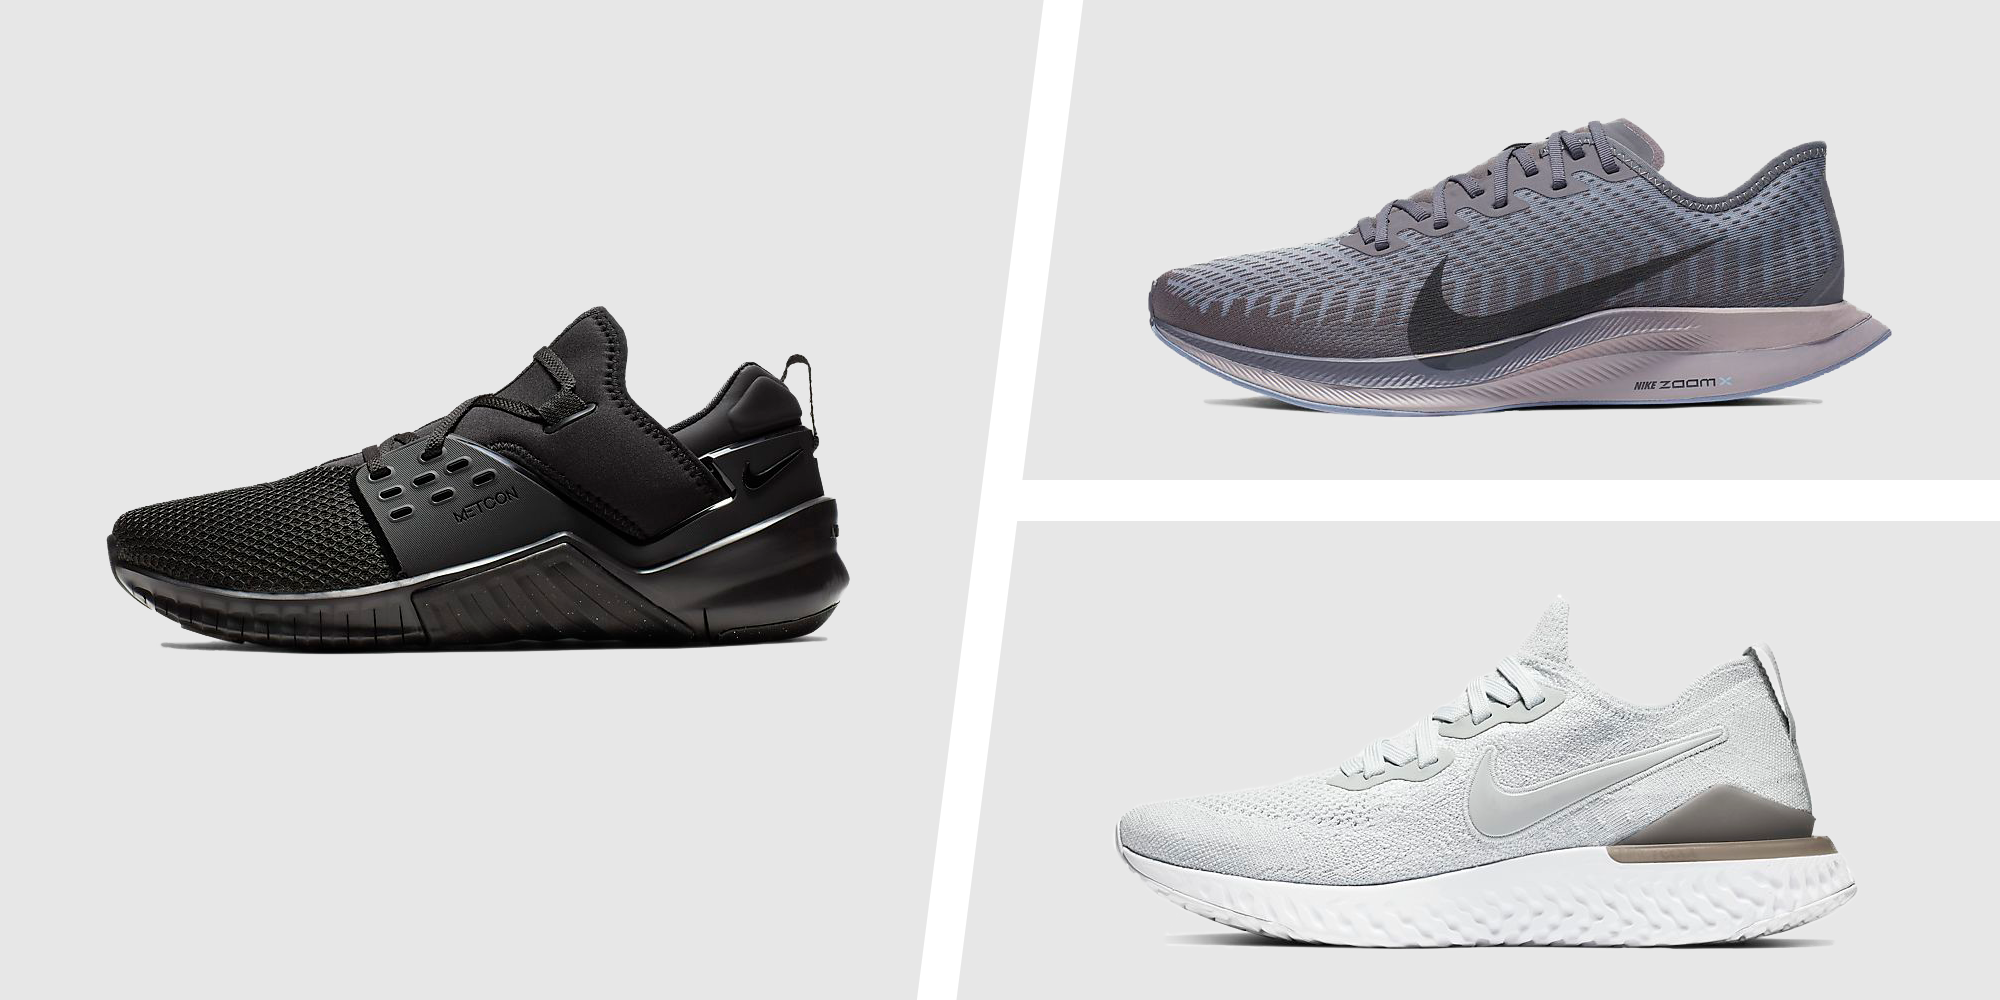 The 5 Best Sneaker Deals to Score From This Killer Nike Sale